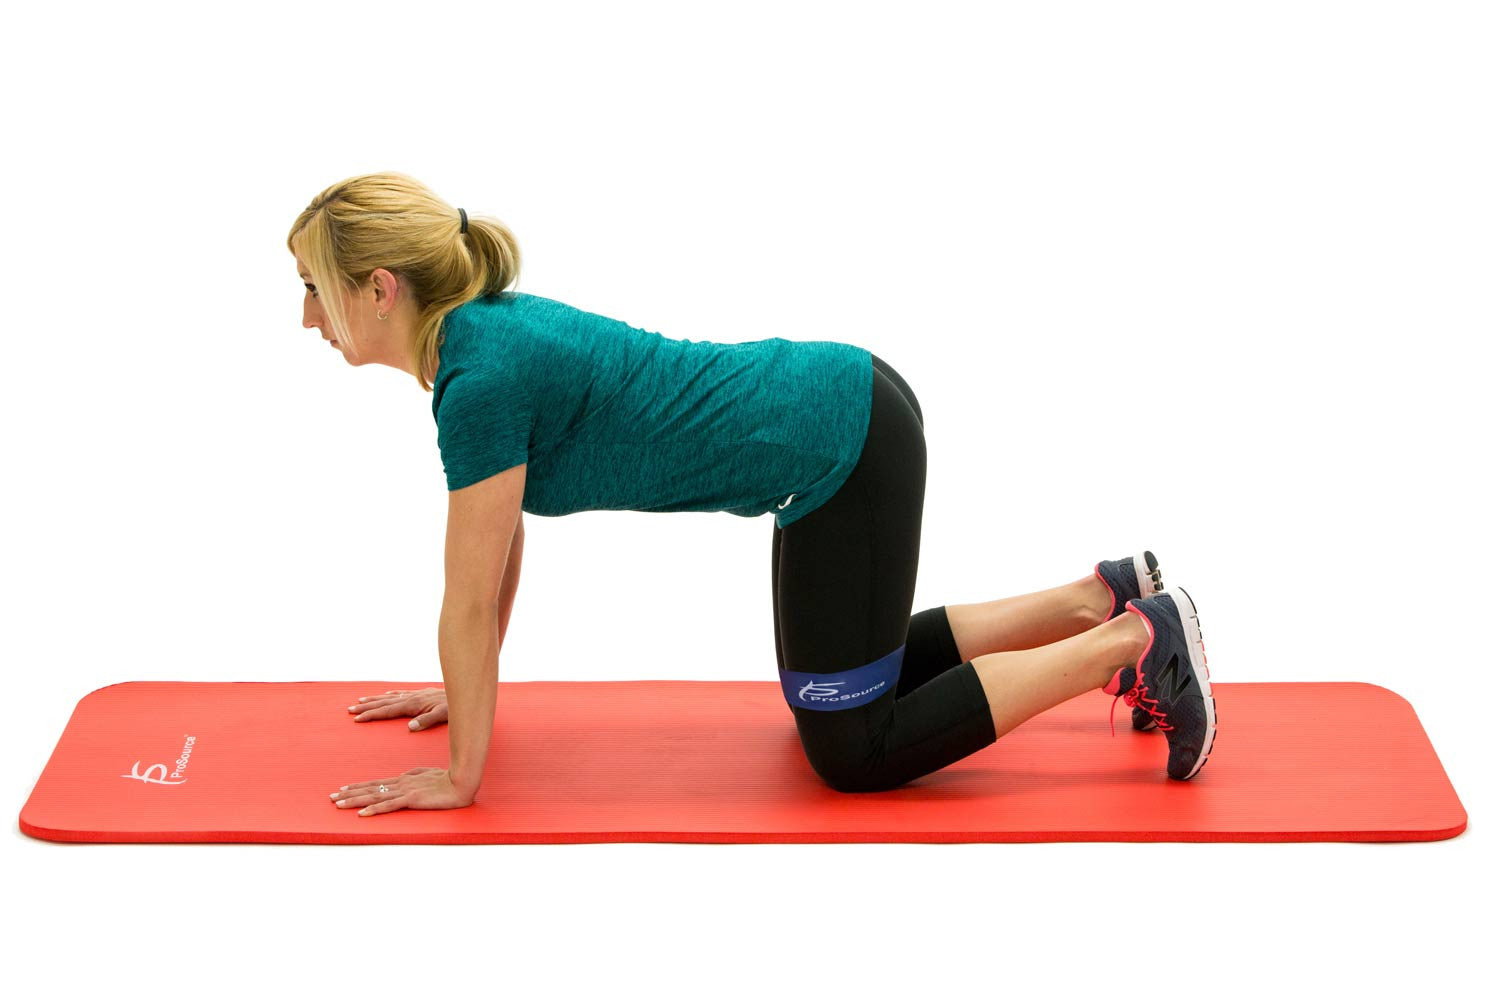 Woman using ProsourceFit loop resistance bands while knees on ProsourceFit extra thick yoga and pilates mat